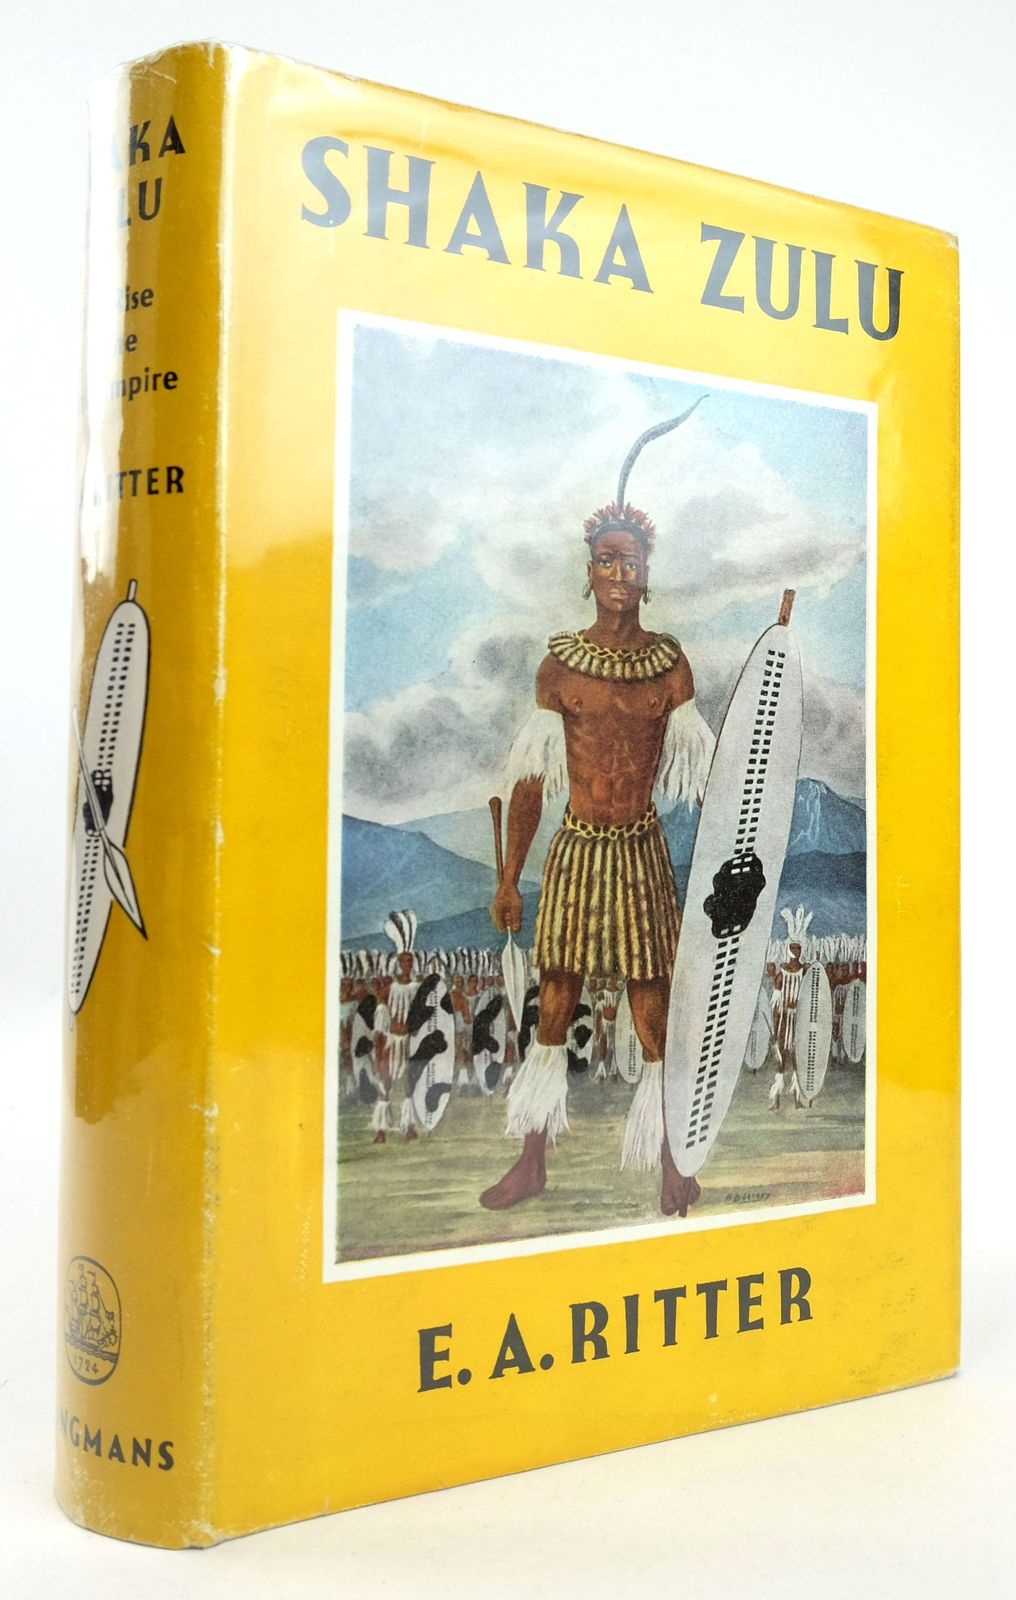 Photo of SHAKA ZULU: THE RISE OF THE ZULU EMPIRE written by Ritter, E.A. published by Longmans, Green & Co. (STOCK CODE: 1819273)  for sale by Stella & Rose's Books